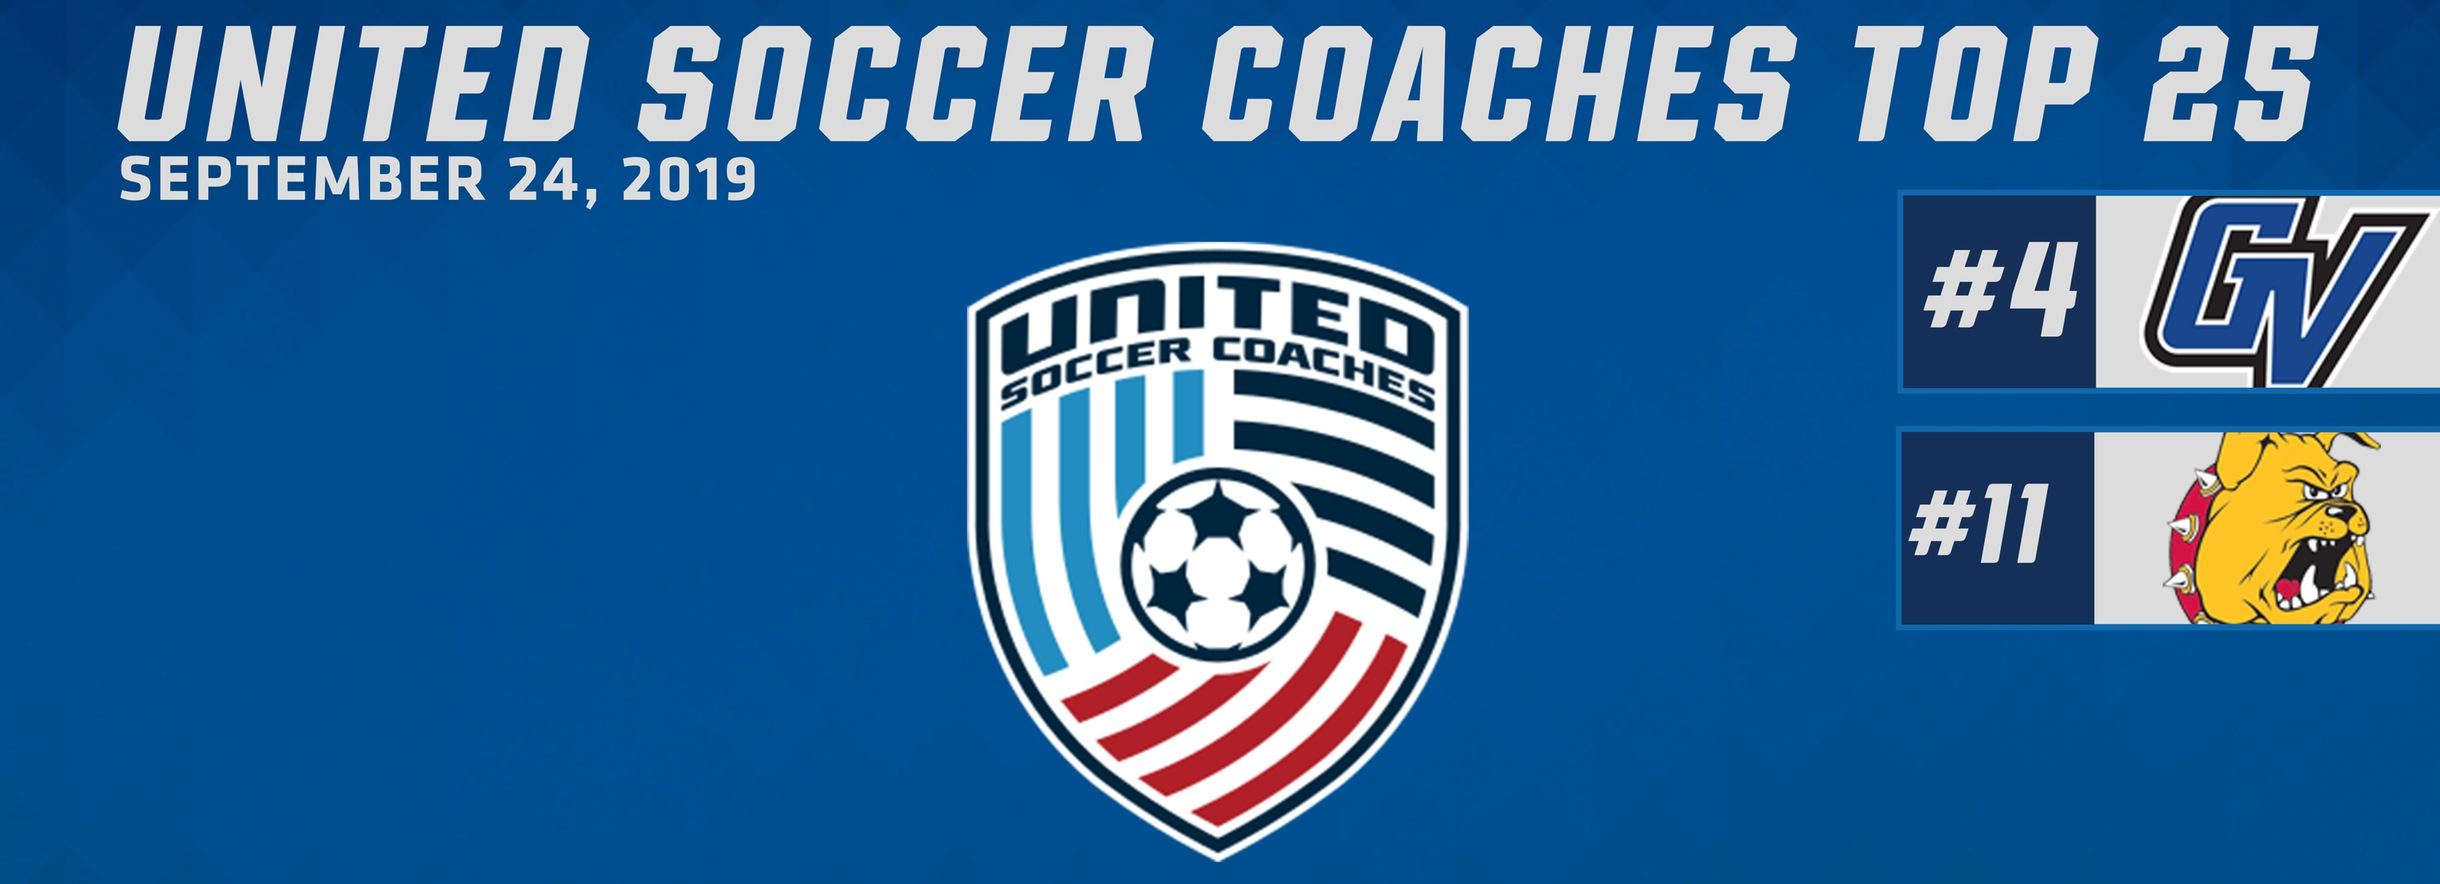 Grand Valley St. 4th, Ferris St. 11th In United Soccer Coaches Poll